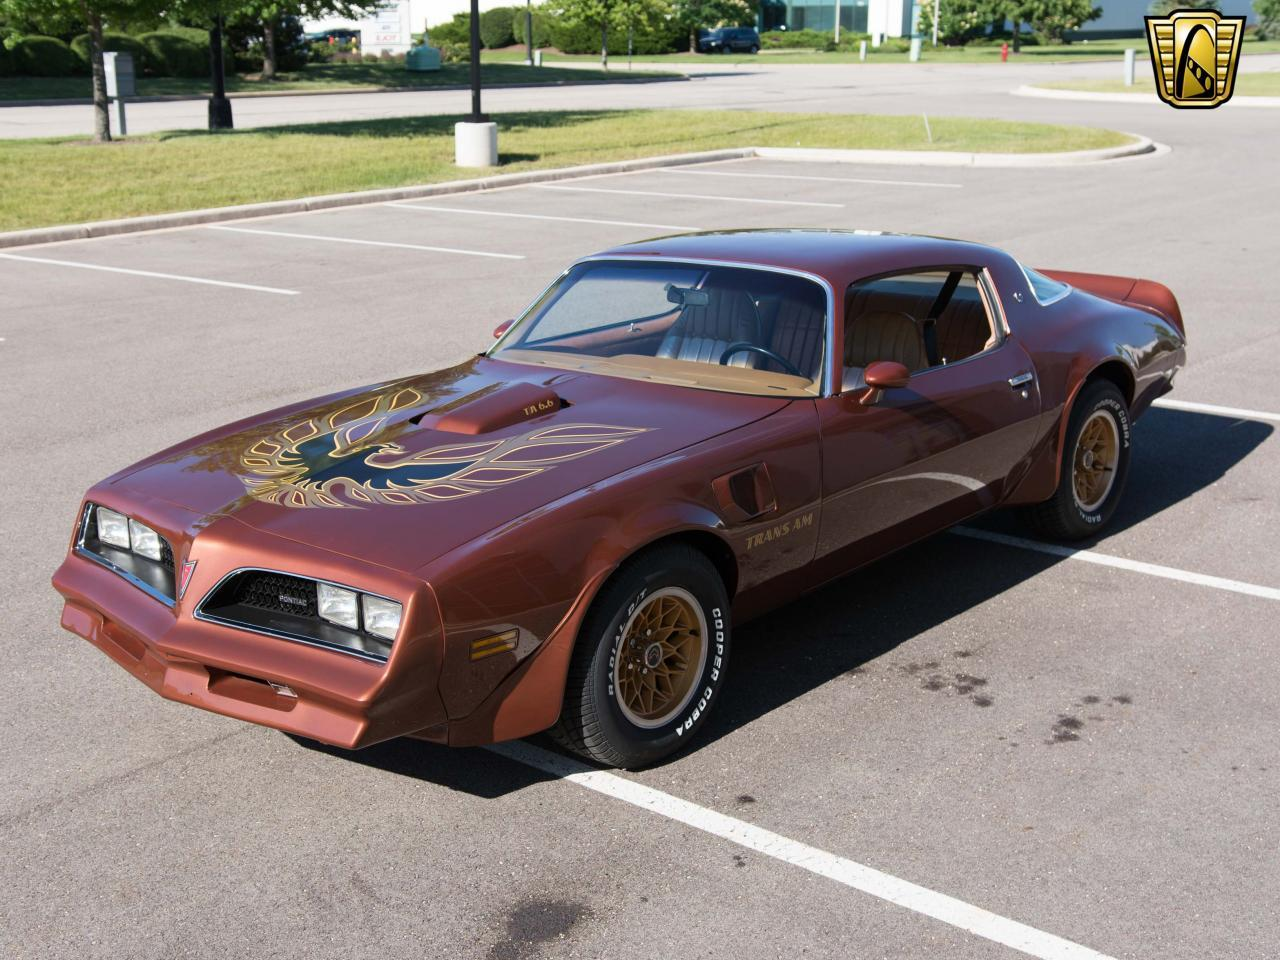 Large Picture of '78 Firebird Trans Am located in Kenosha Wisconsin - $22,995.00 - LBDU